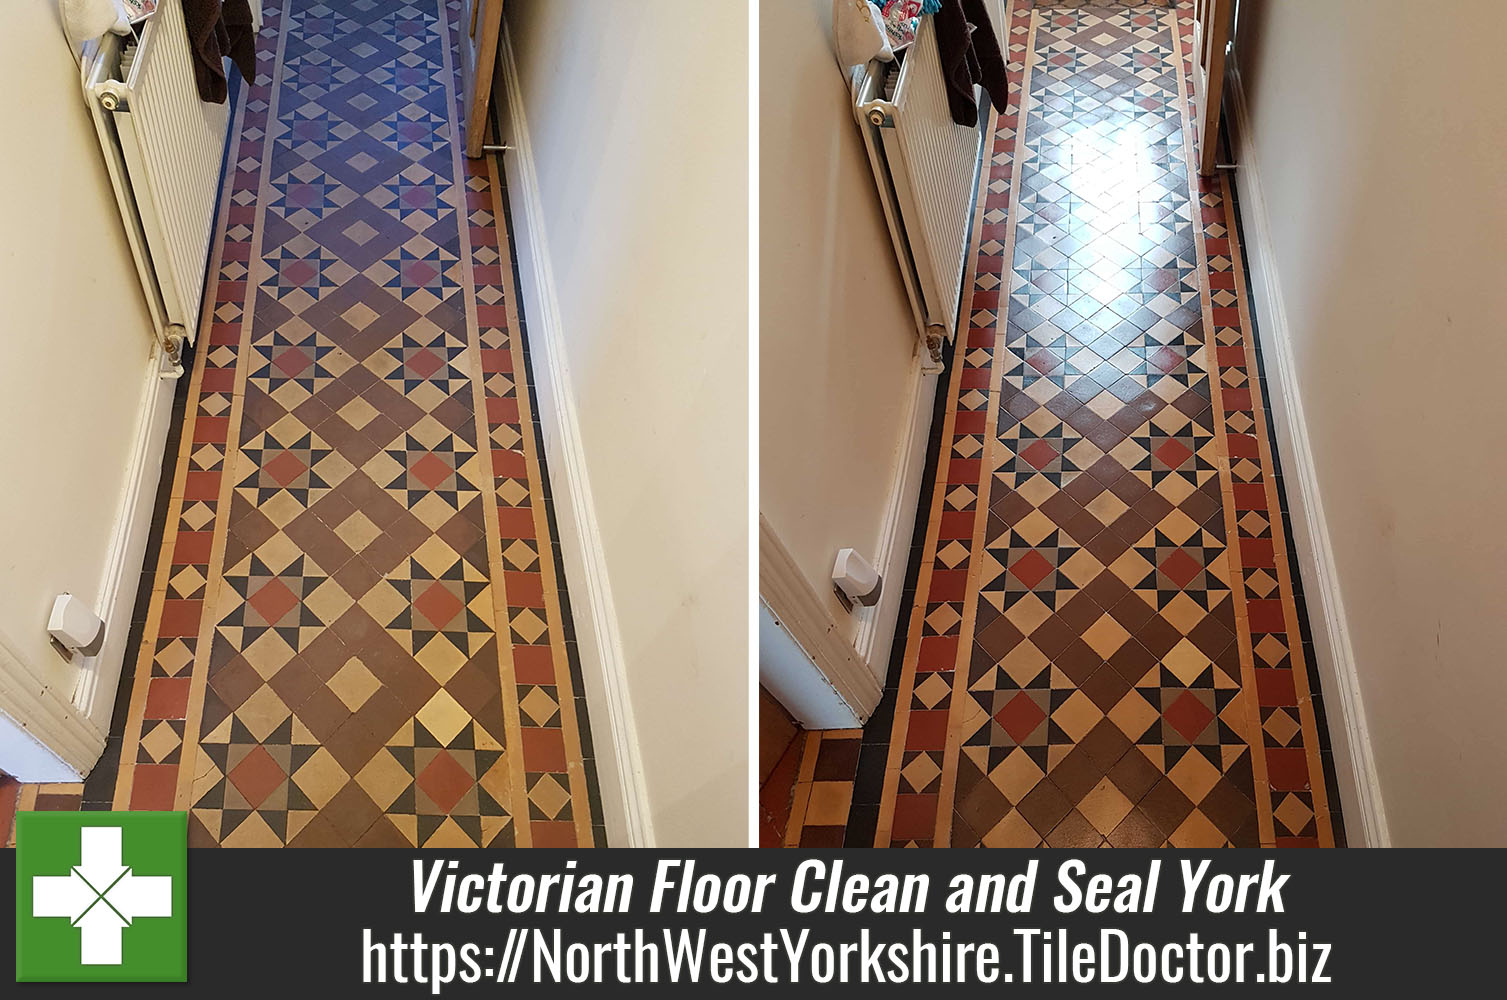 Victorian Tiled Hallway Floor Deep Cleaned and Sealed in York